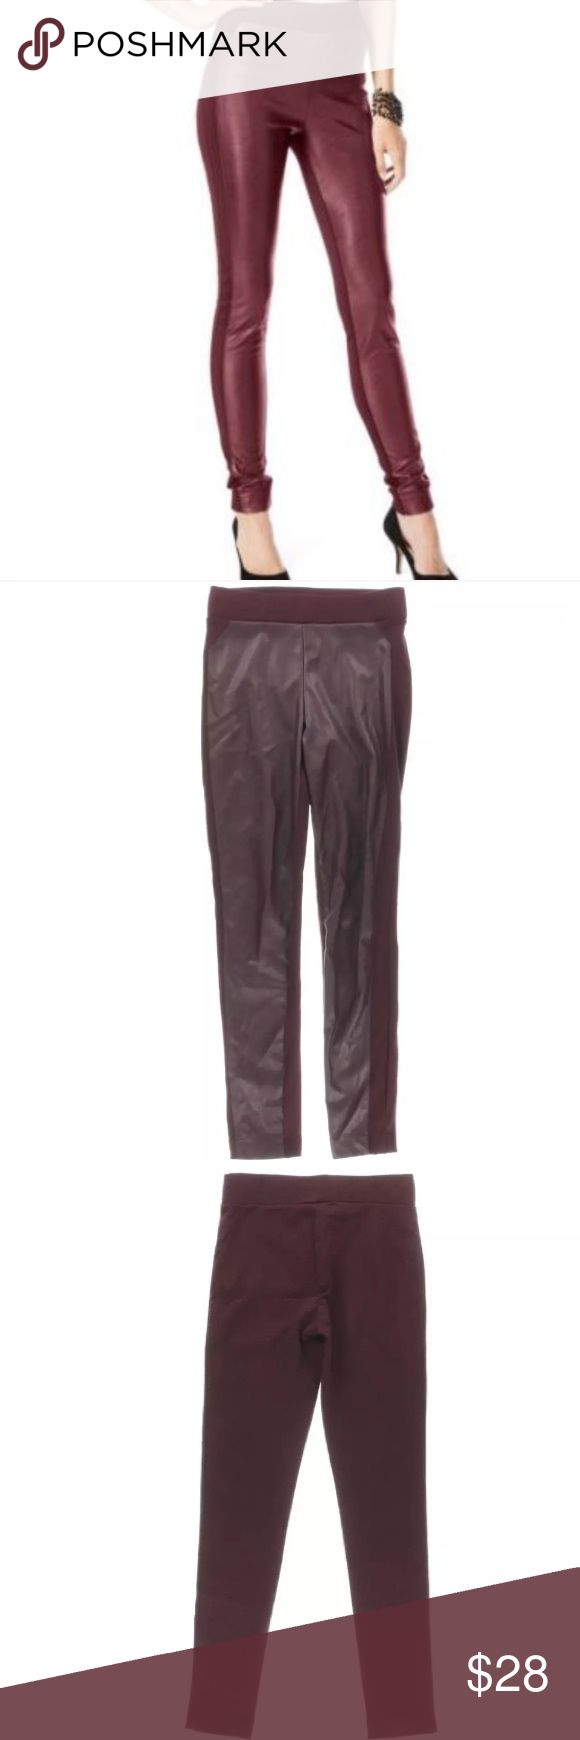 Maroon Faux Leather Skinny Leg Leggings Manufacturer color is Port Inseam is 29 1/2 Inches Rise is 9 1/2 Inches Hips Across is 15 1/2 Inches Leg Opening is 9 1/2 Inches Material is 65% Rayon/30% Nylon/5% Spandex Faux Leather. Bundle for discounts! Reasonable offers considered. Thank you for shopping my closet! INC International Concepts Pants Leggings